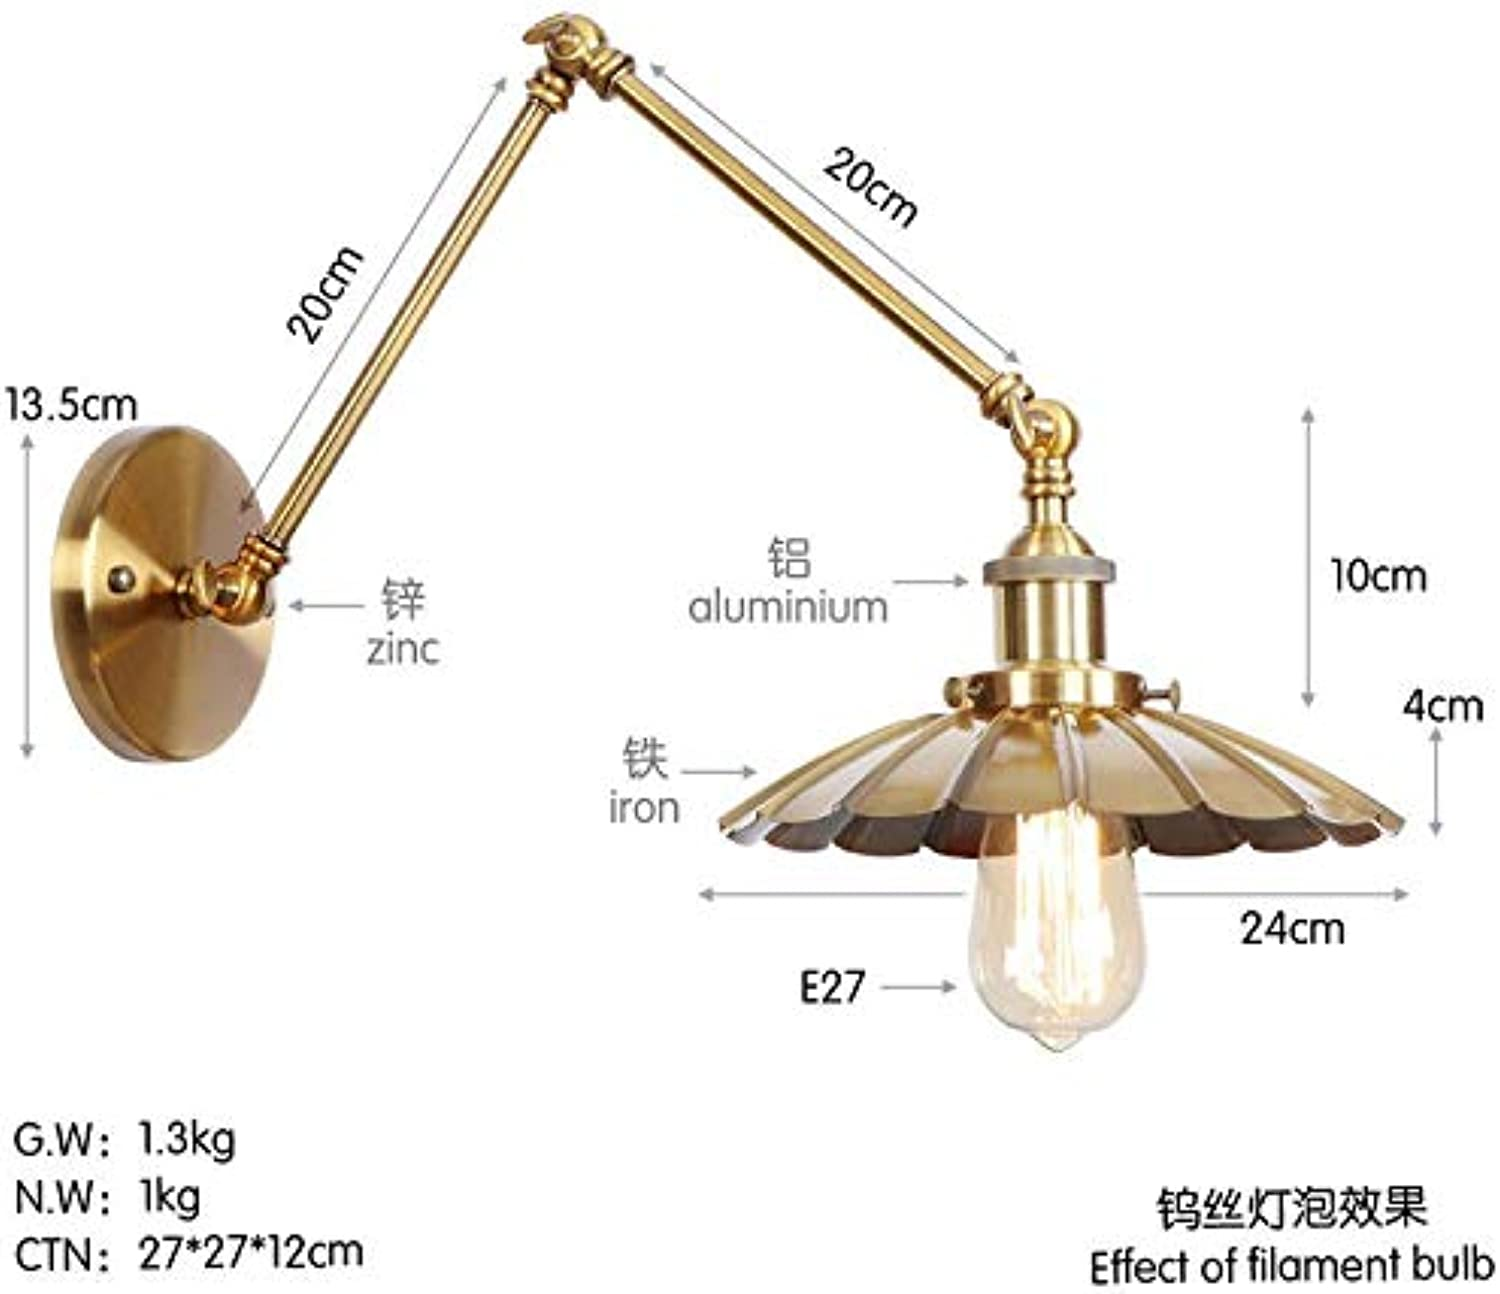 Mao&Long Mini-Stil Retro Vintage Country Traditional Classic Swing Arm Lichter Metall Wandleuchte 85-240V 40W, C, 20 + 20cm